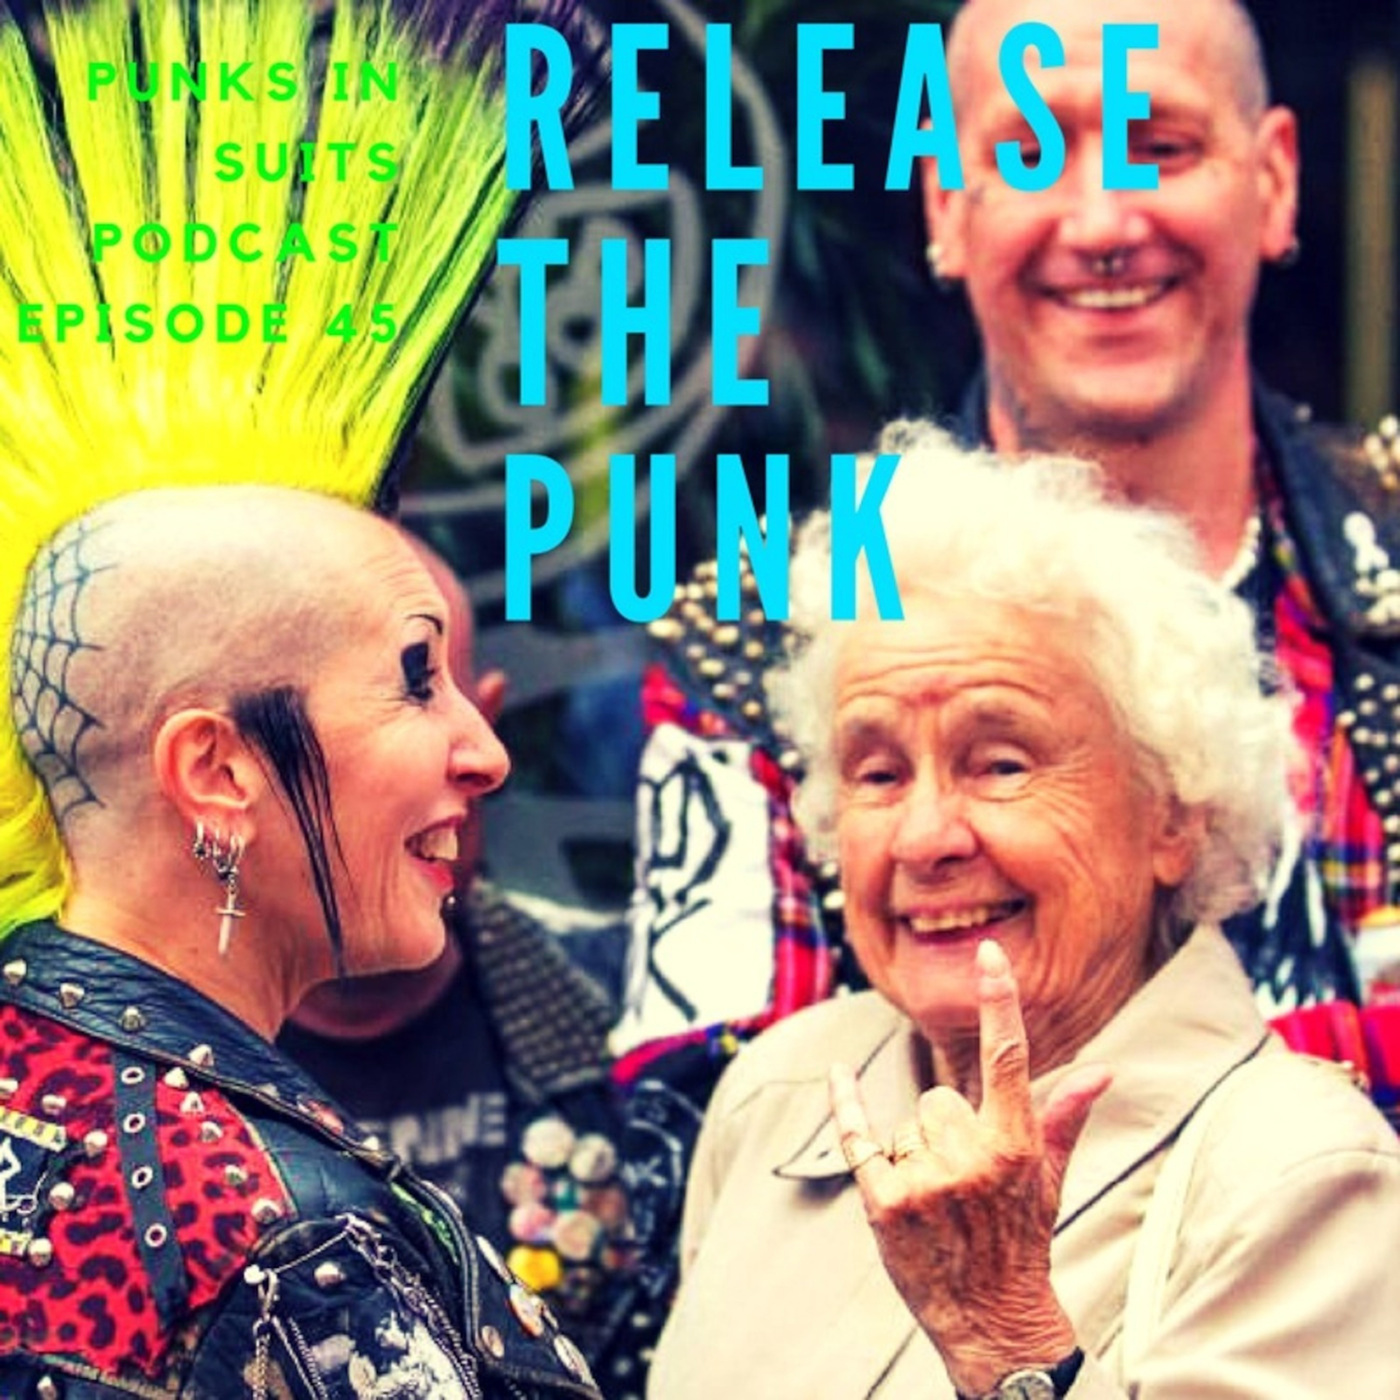 Episode 45: Release the Punk!